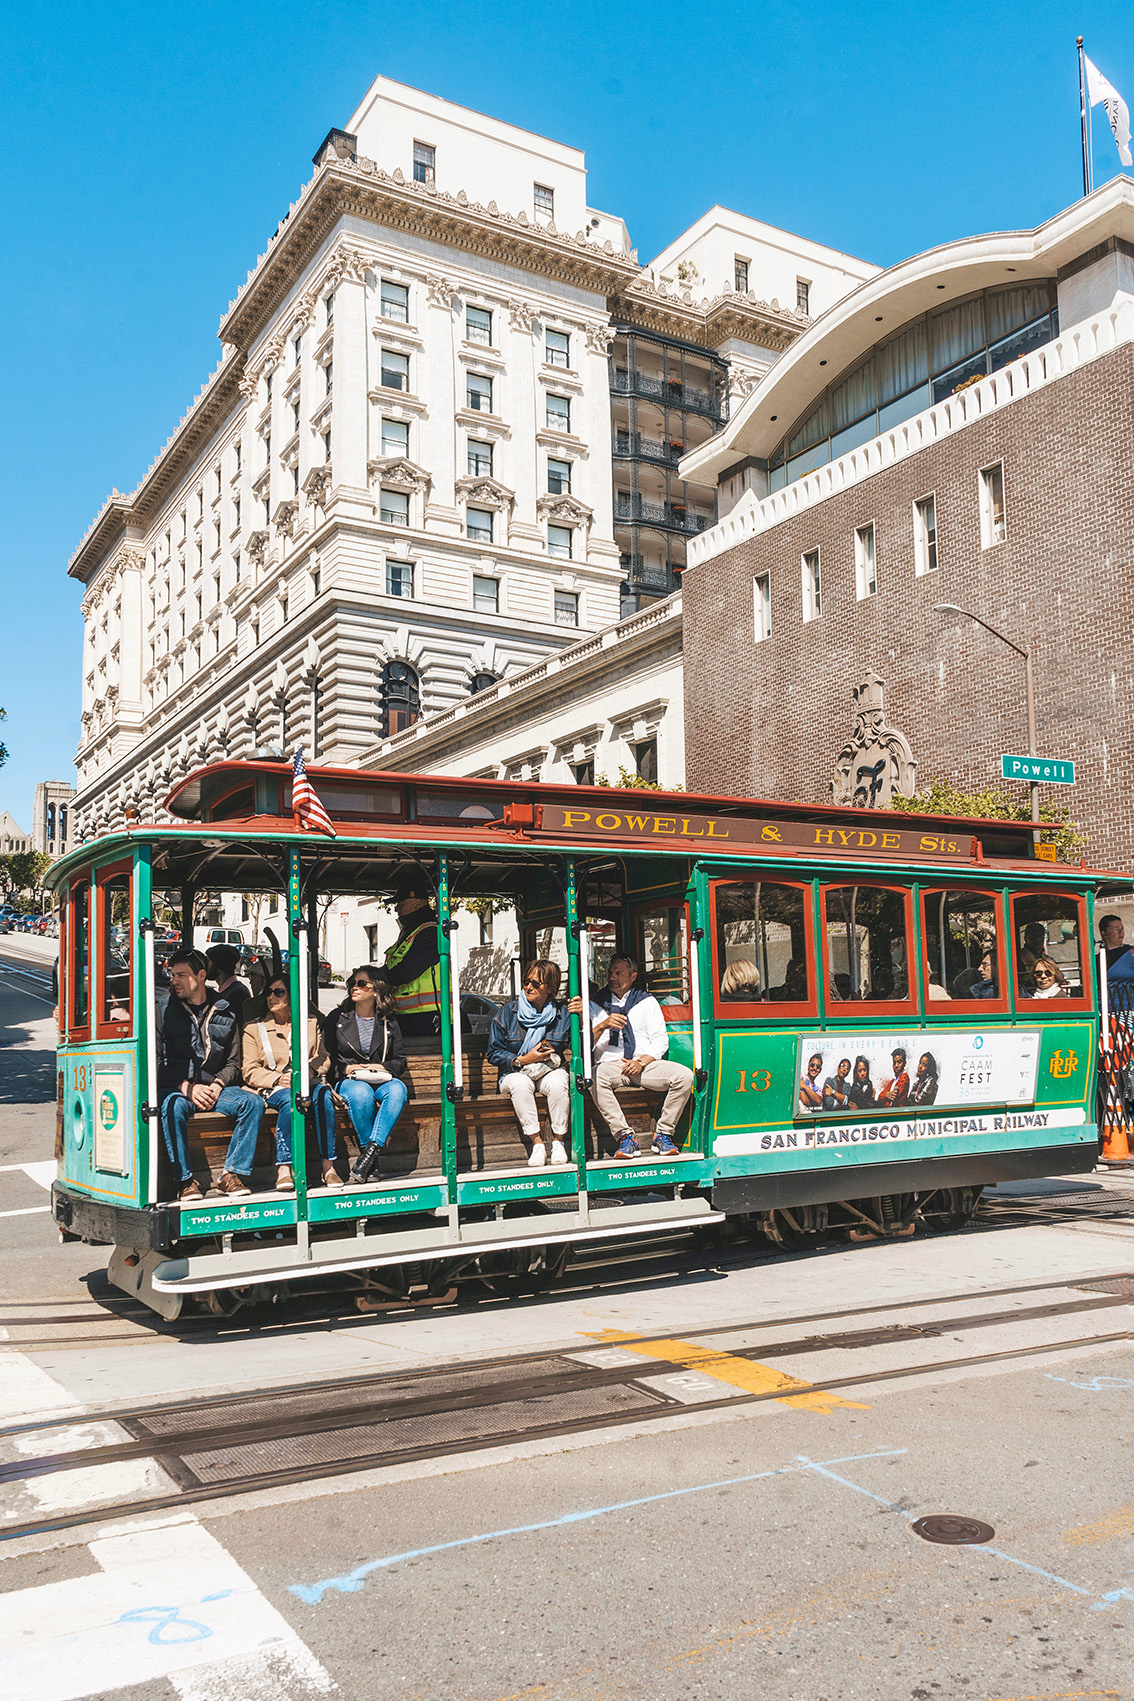 26 10 most instagrammable places in San Francisco you don't have to miss!